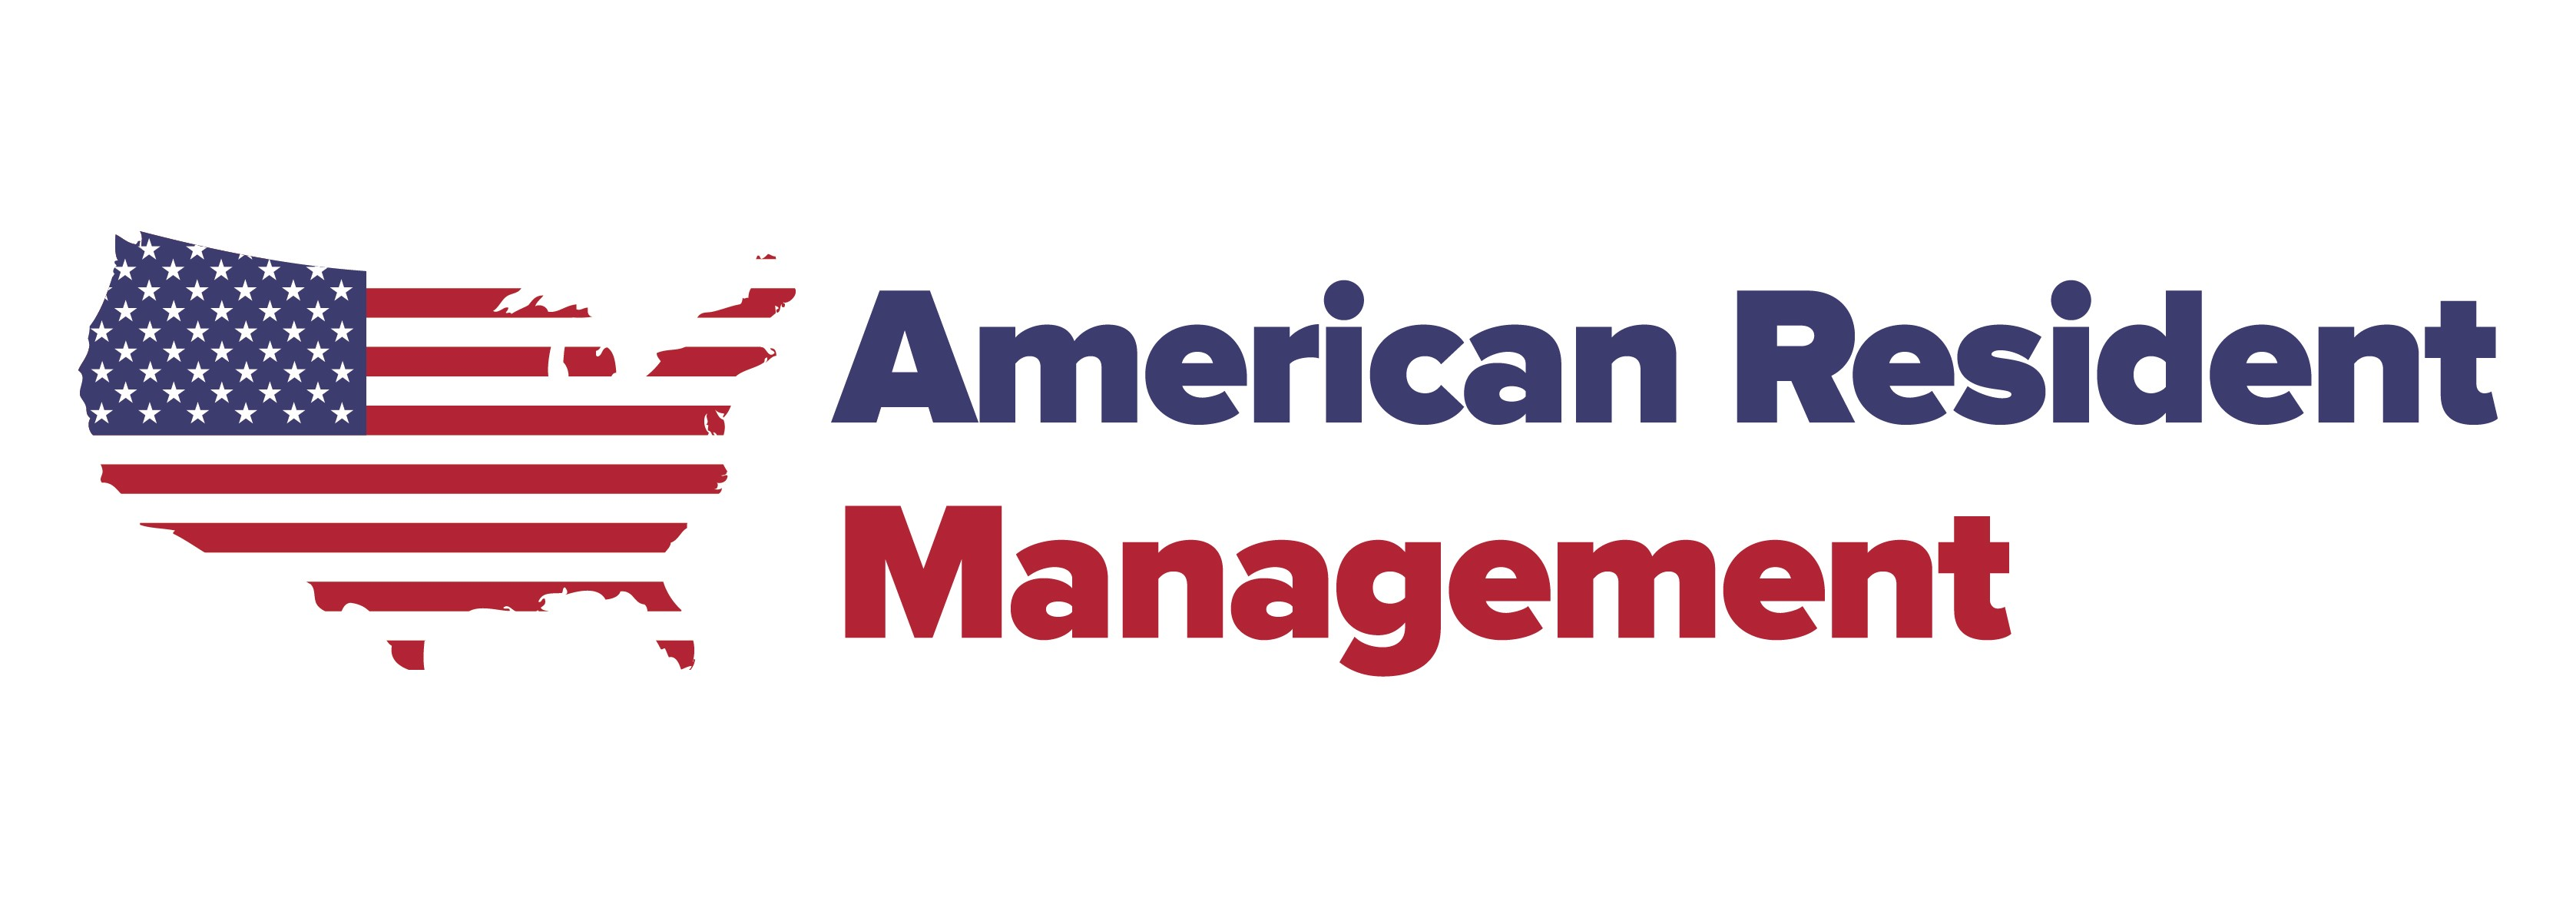 American Resident Management